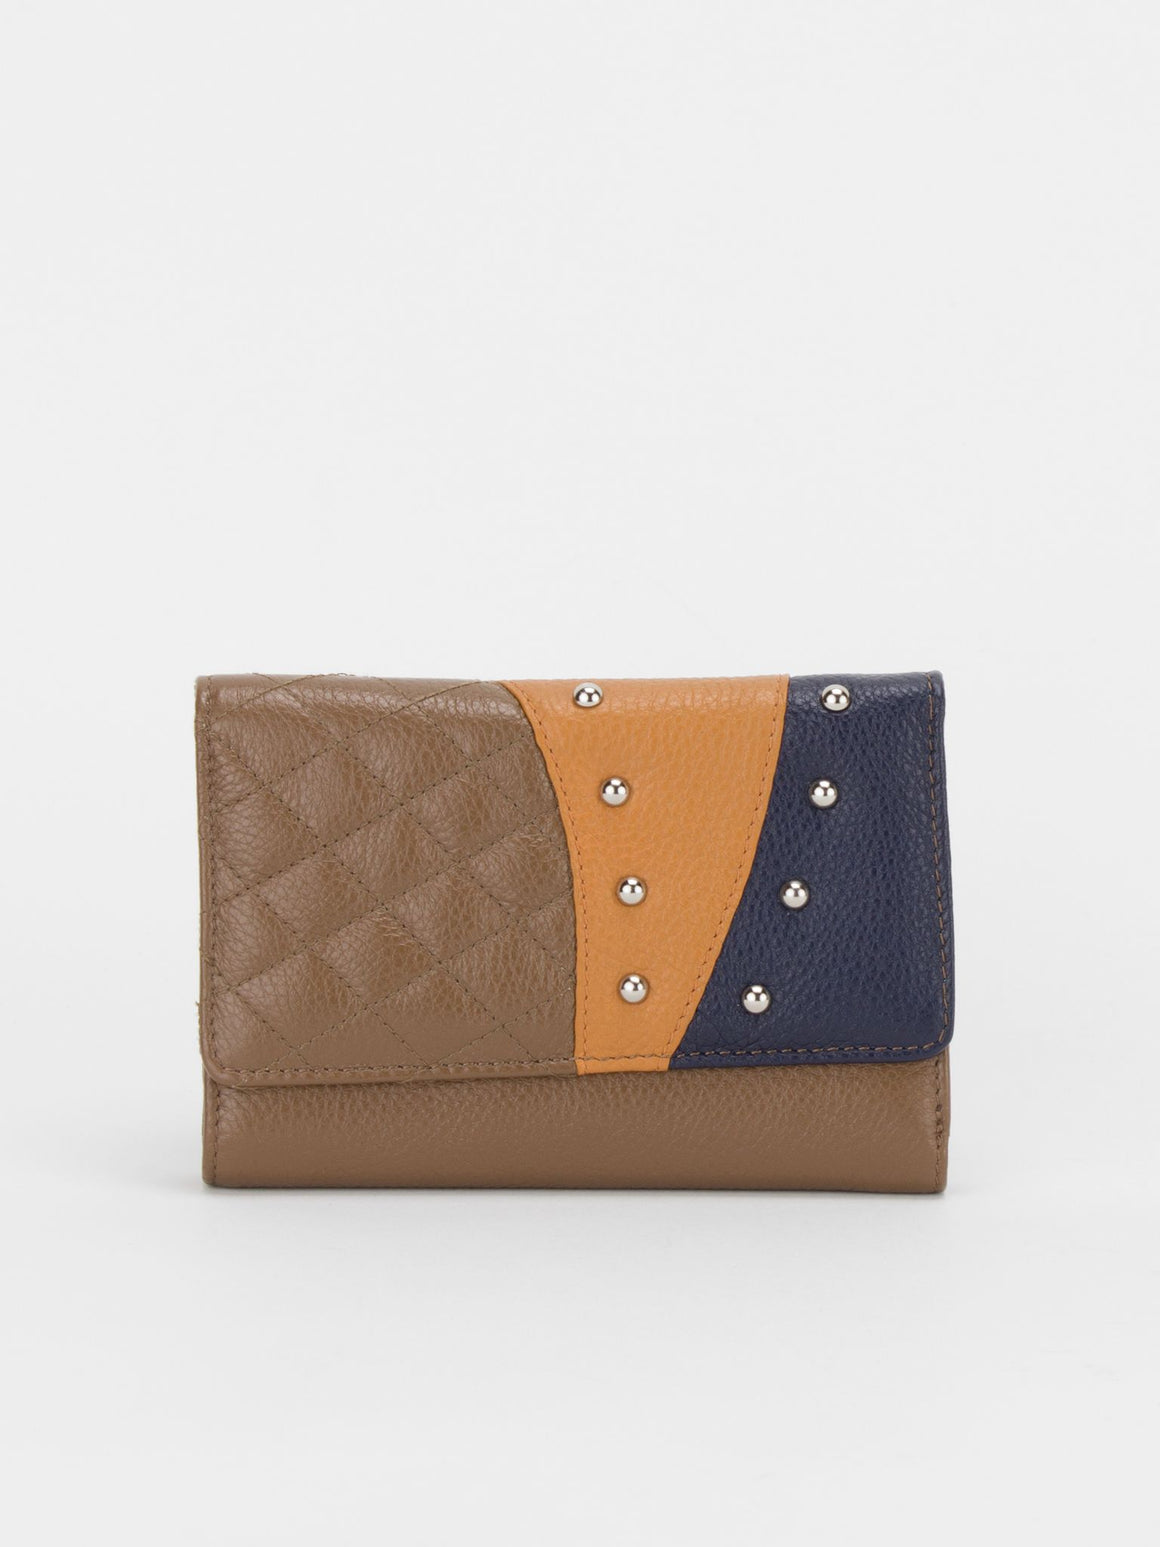 Bella Colourblock Leather Medium Wallet - Brown